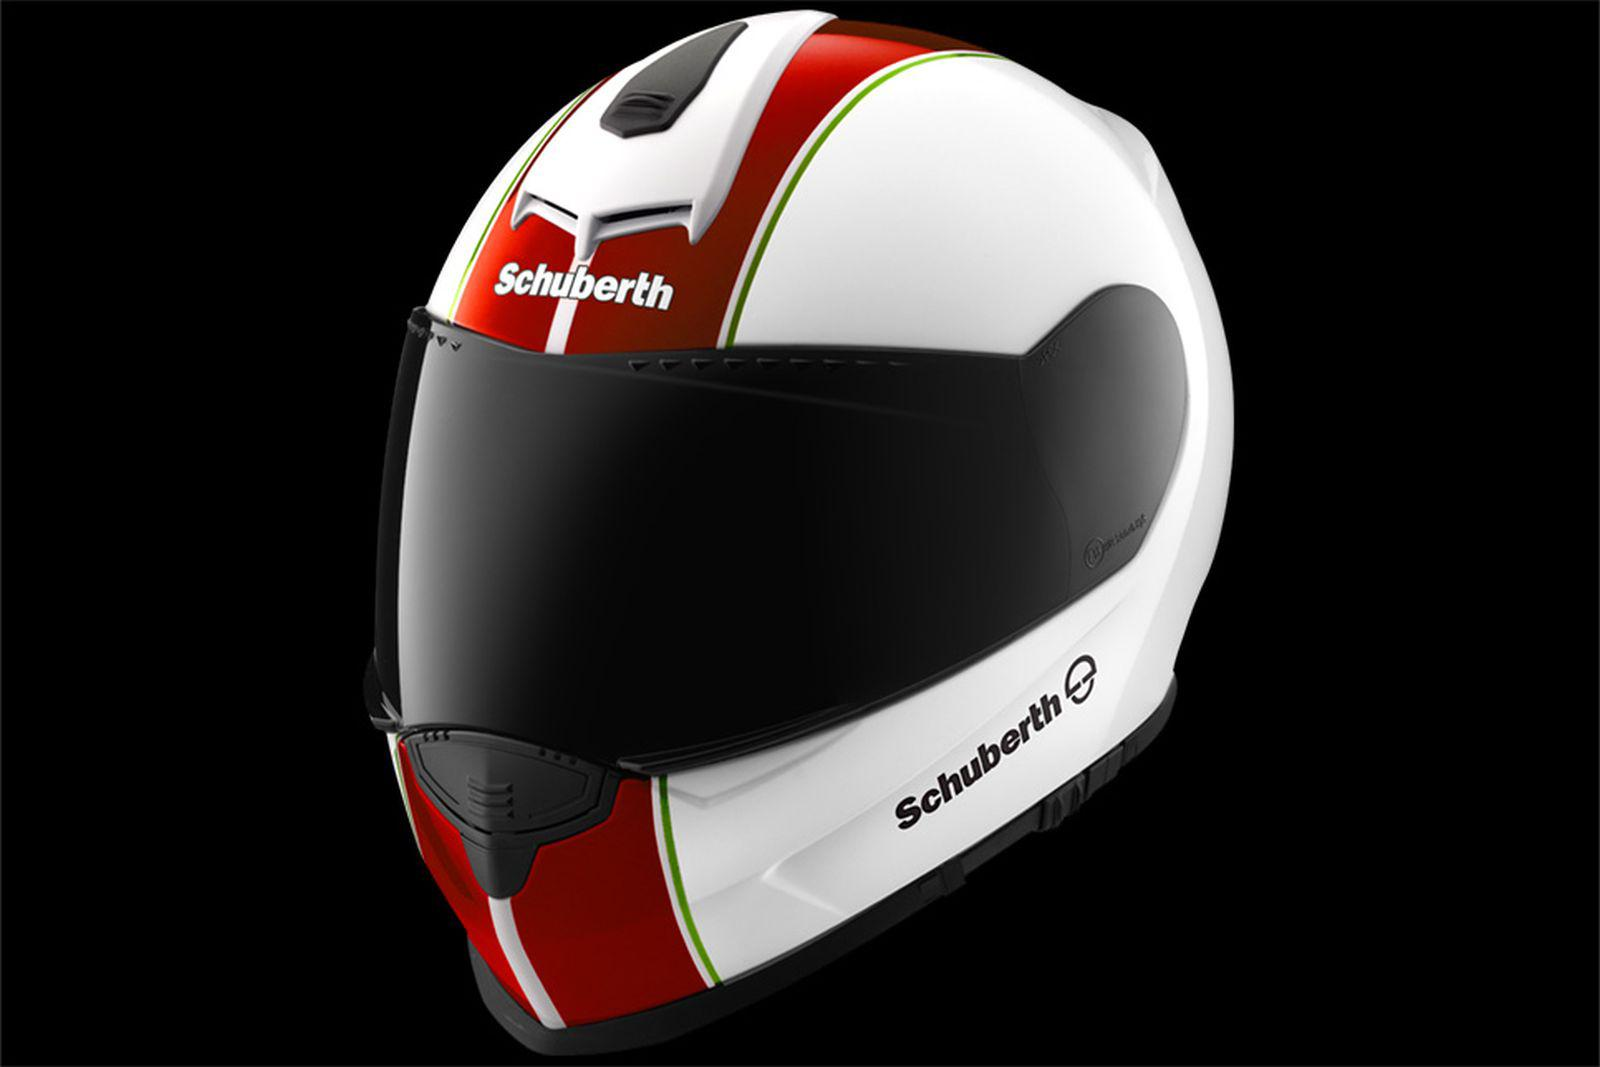 schuberth helme c3 pro s2 sr1 motorrad fotos motorrad. Black Bedroom Furniture Sets. Home Design Ideas